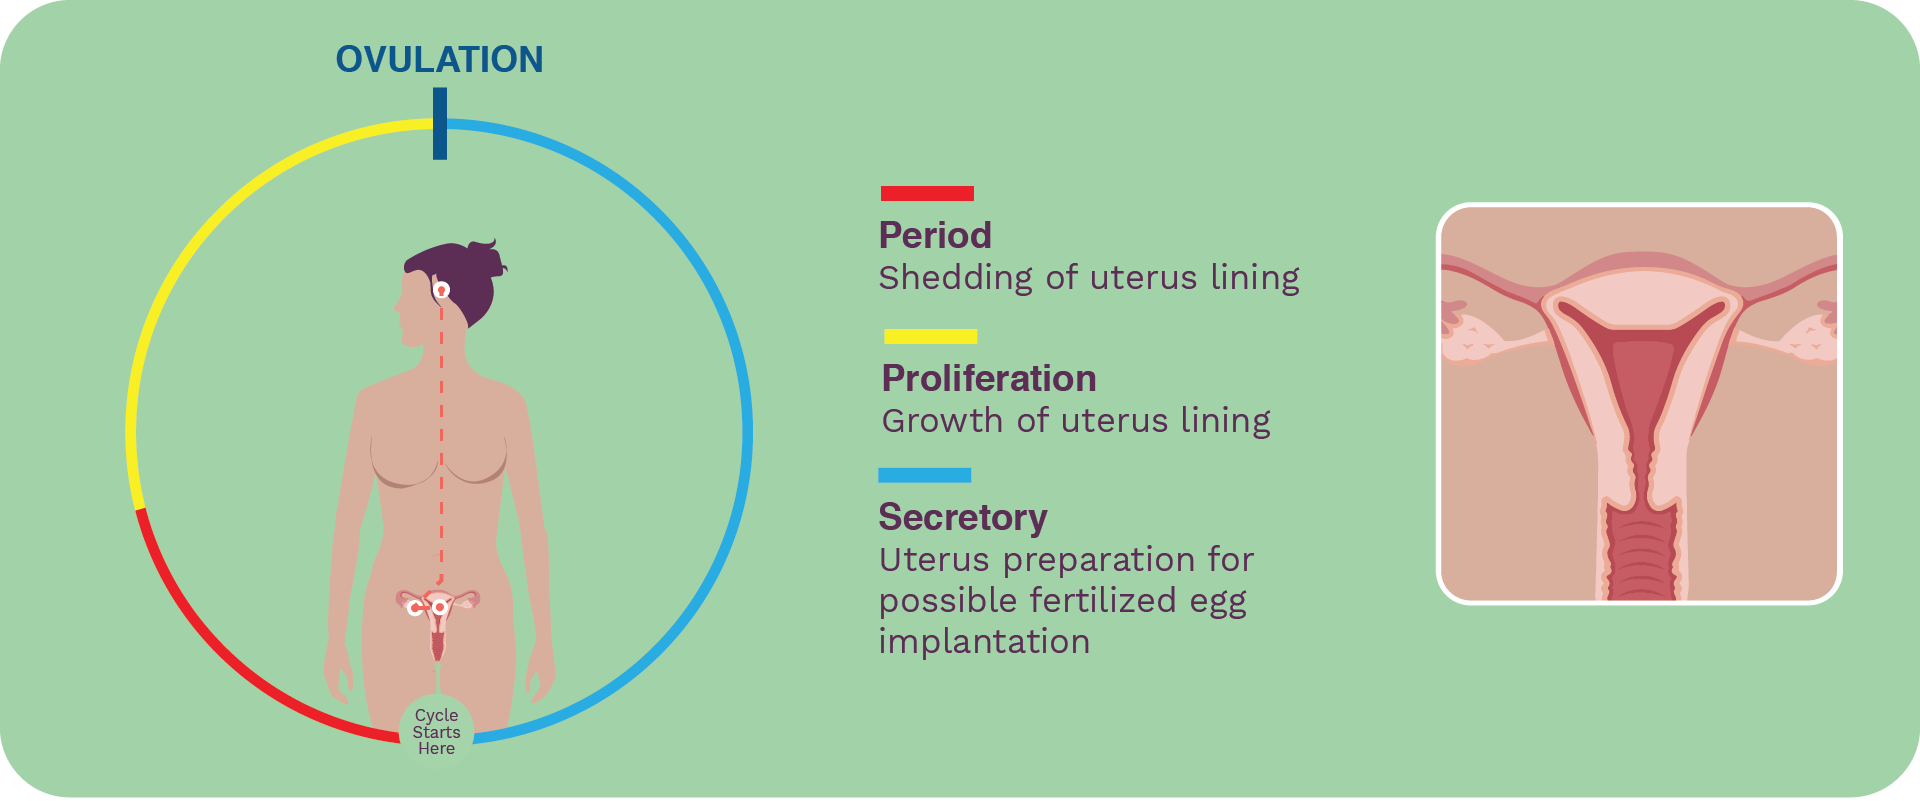 seed-cycle-blend-ready-to-use-seed-cycling-uterine-cycle